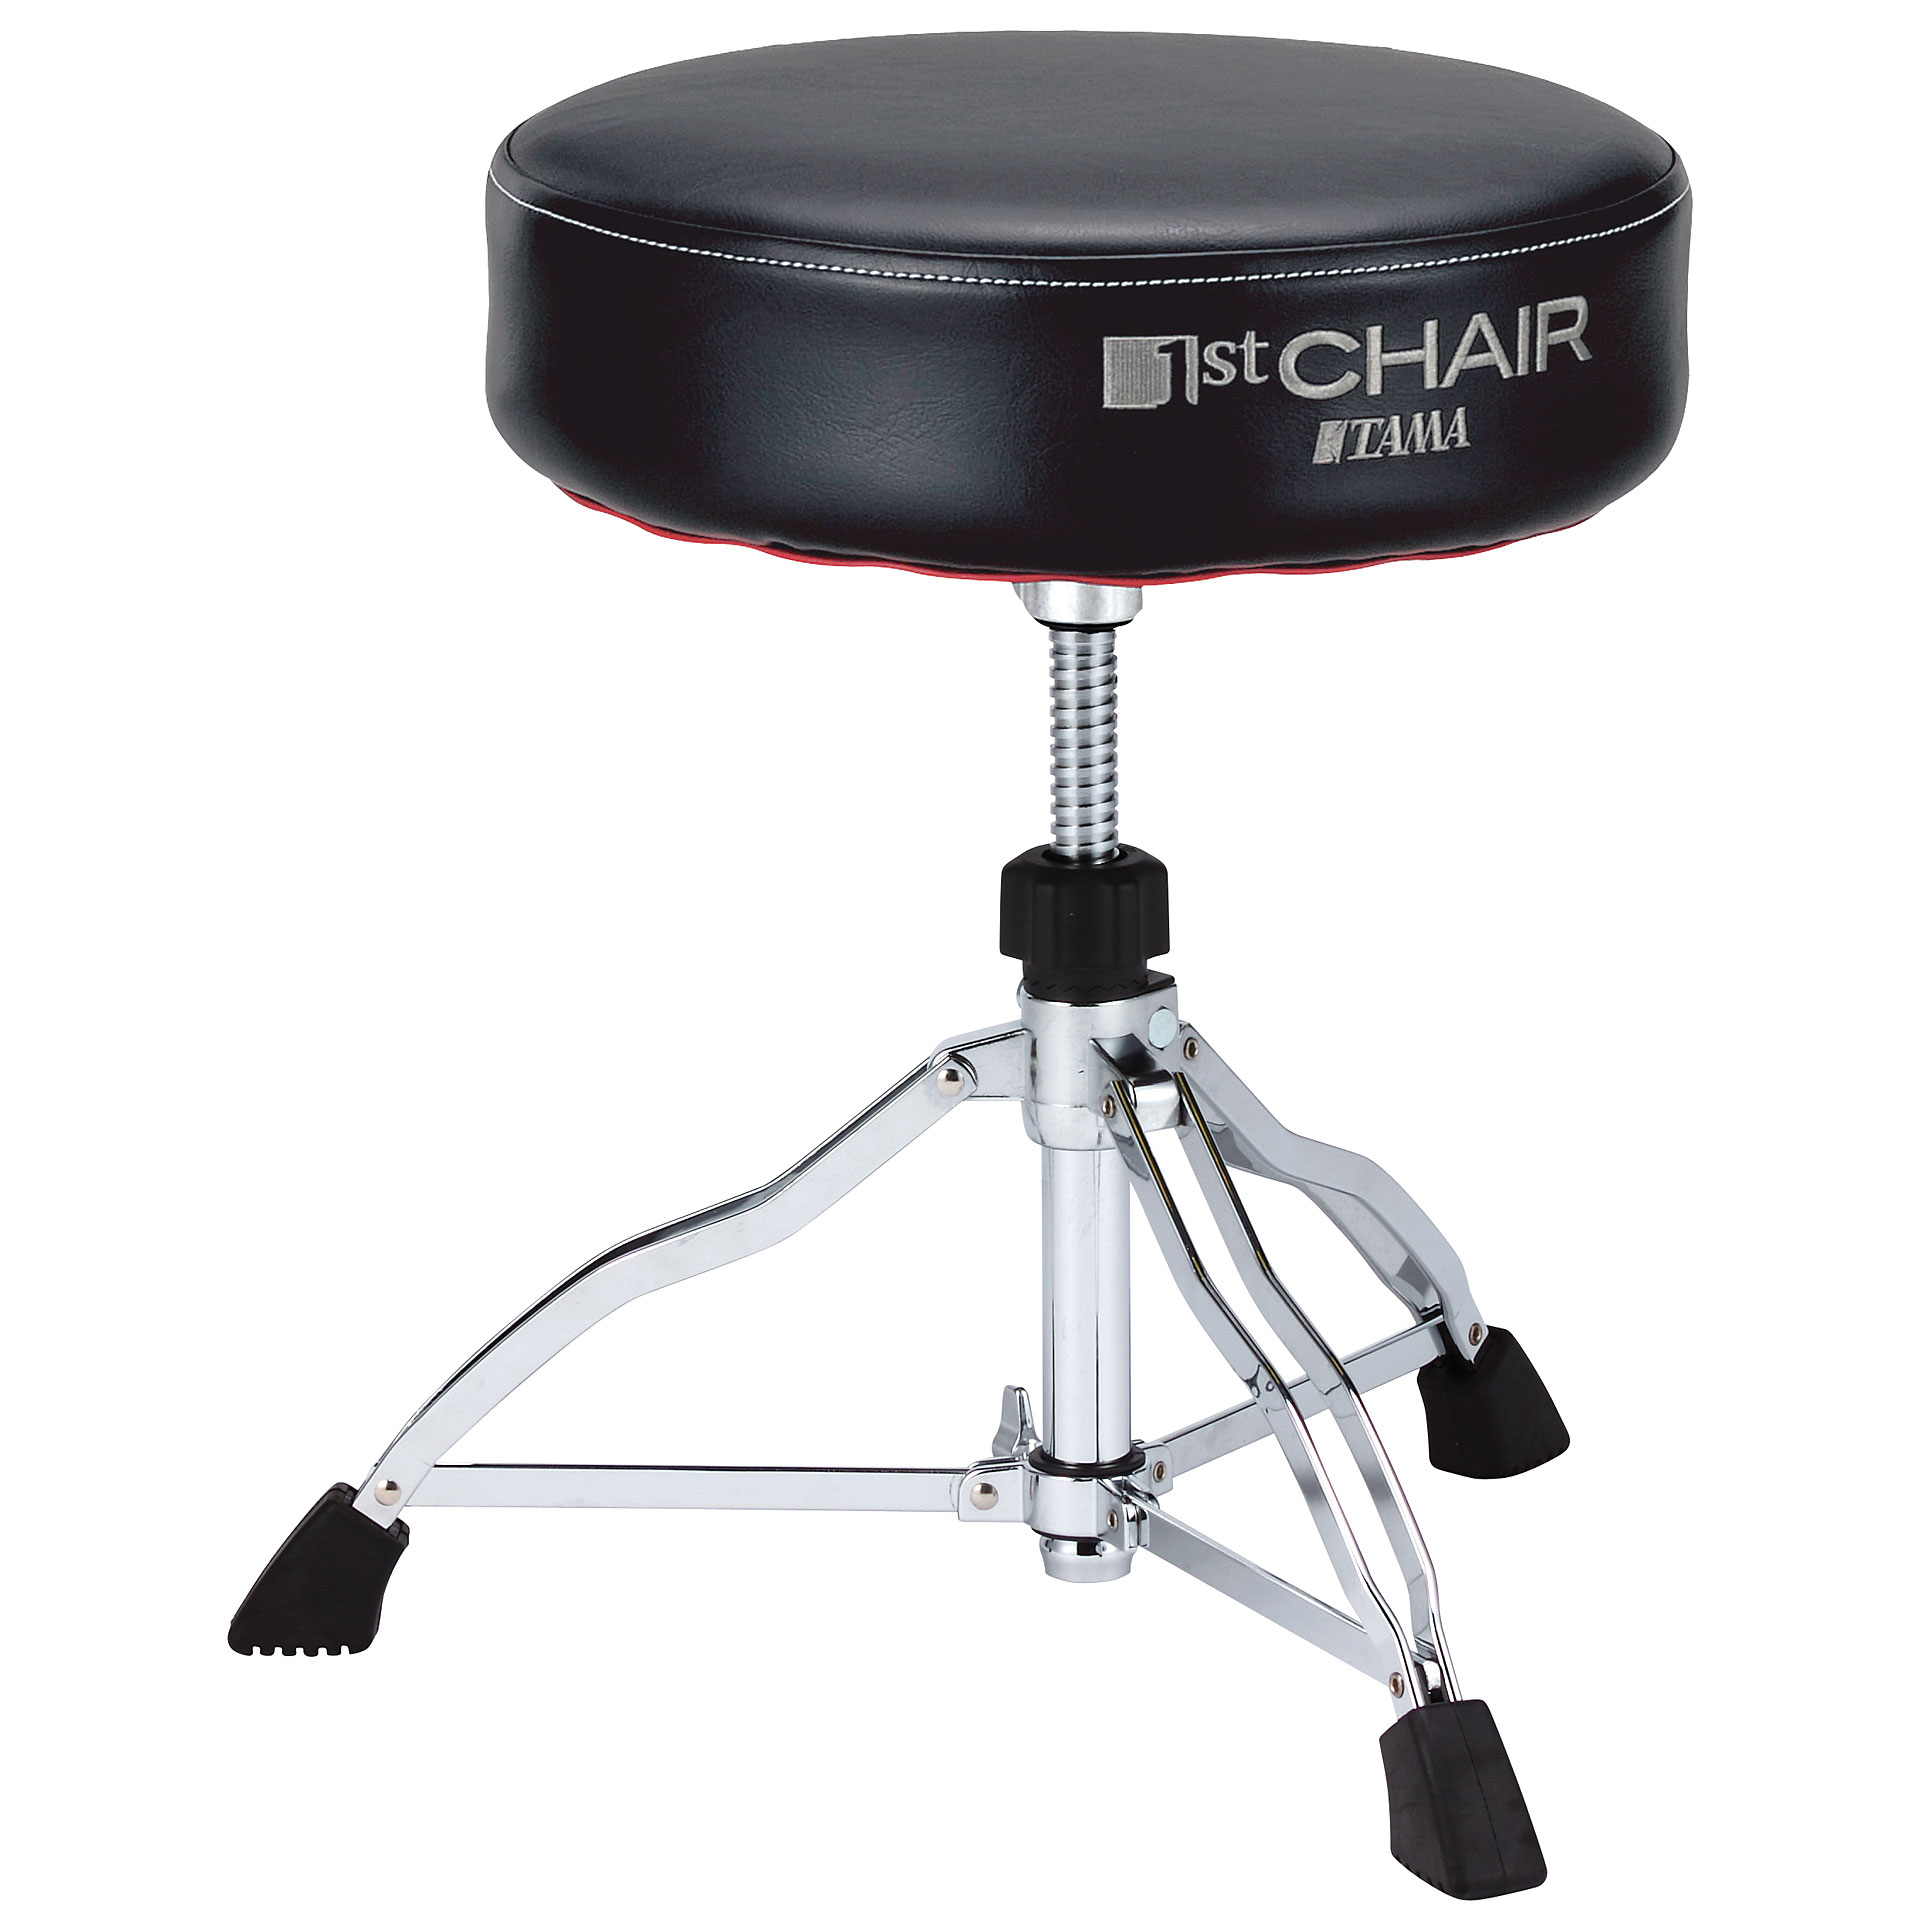 Tama 1st Chair Ht430bs Low Profile Tripod 171 Drum Throne